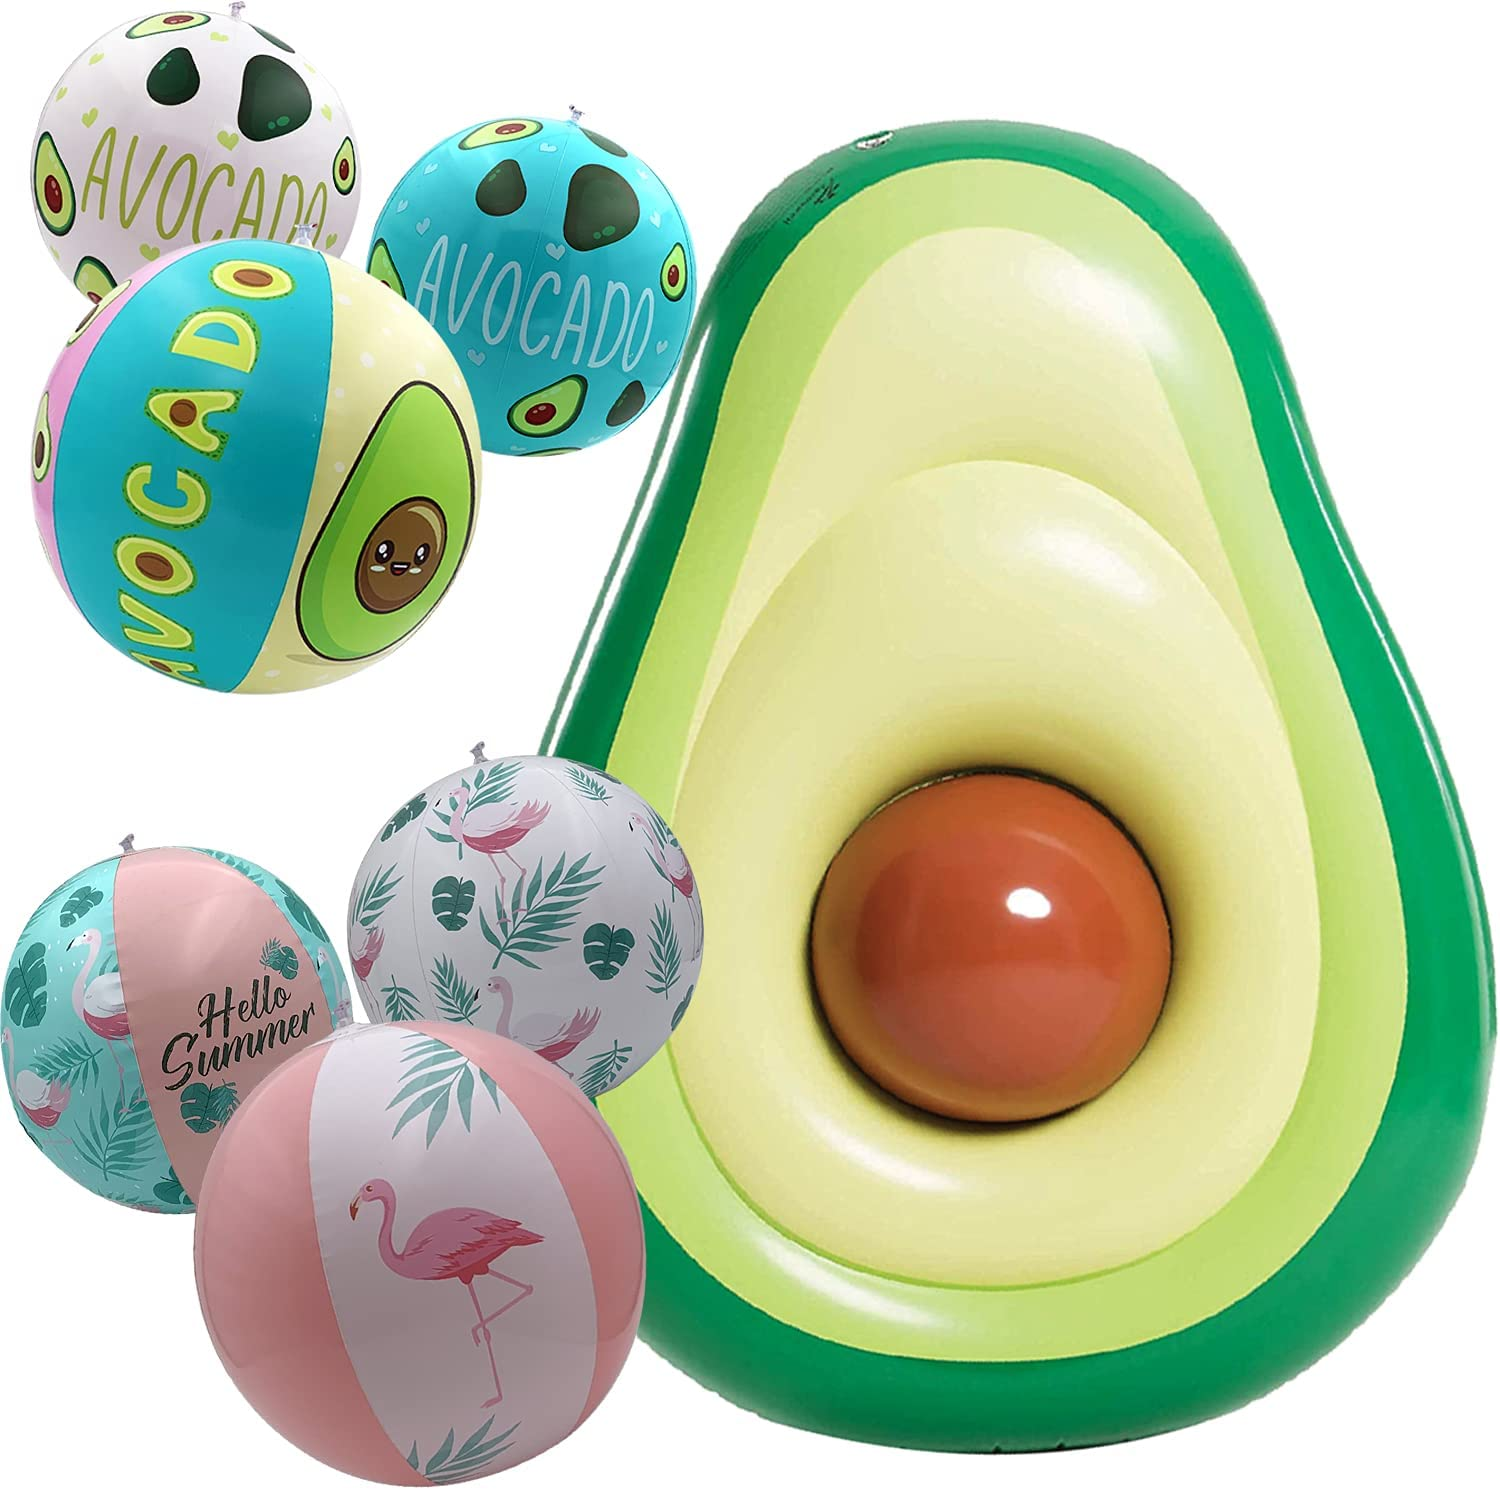 1 Large famous 65 in Avocado Inflatable + Beach Los Angeles Mall Ball Set 3 of